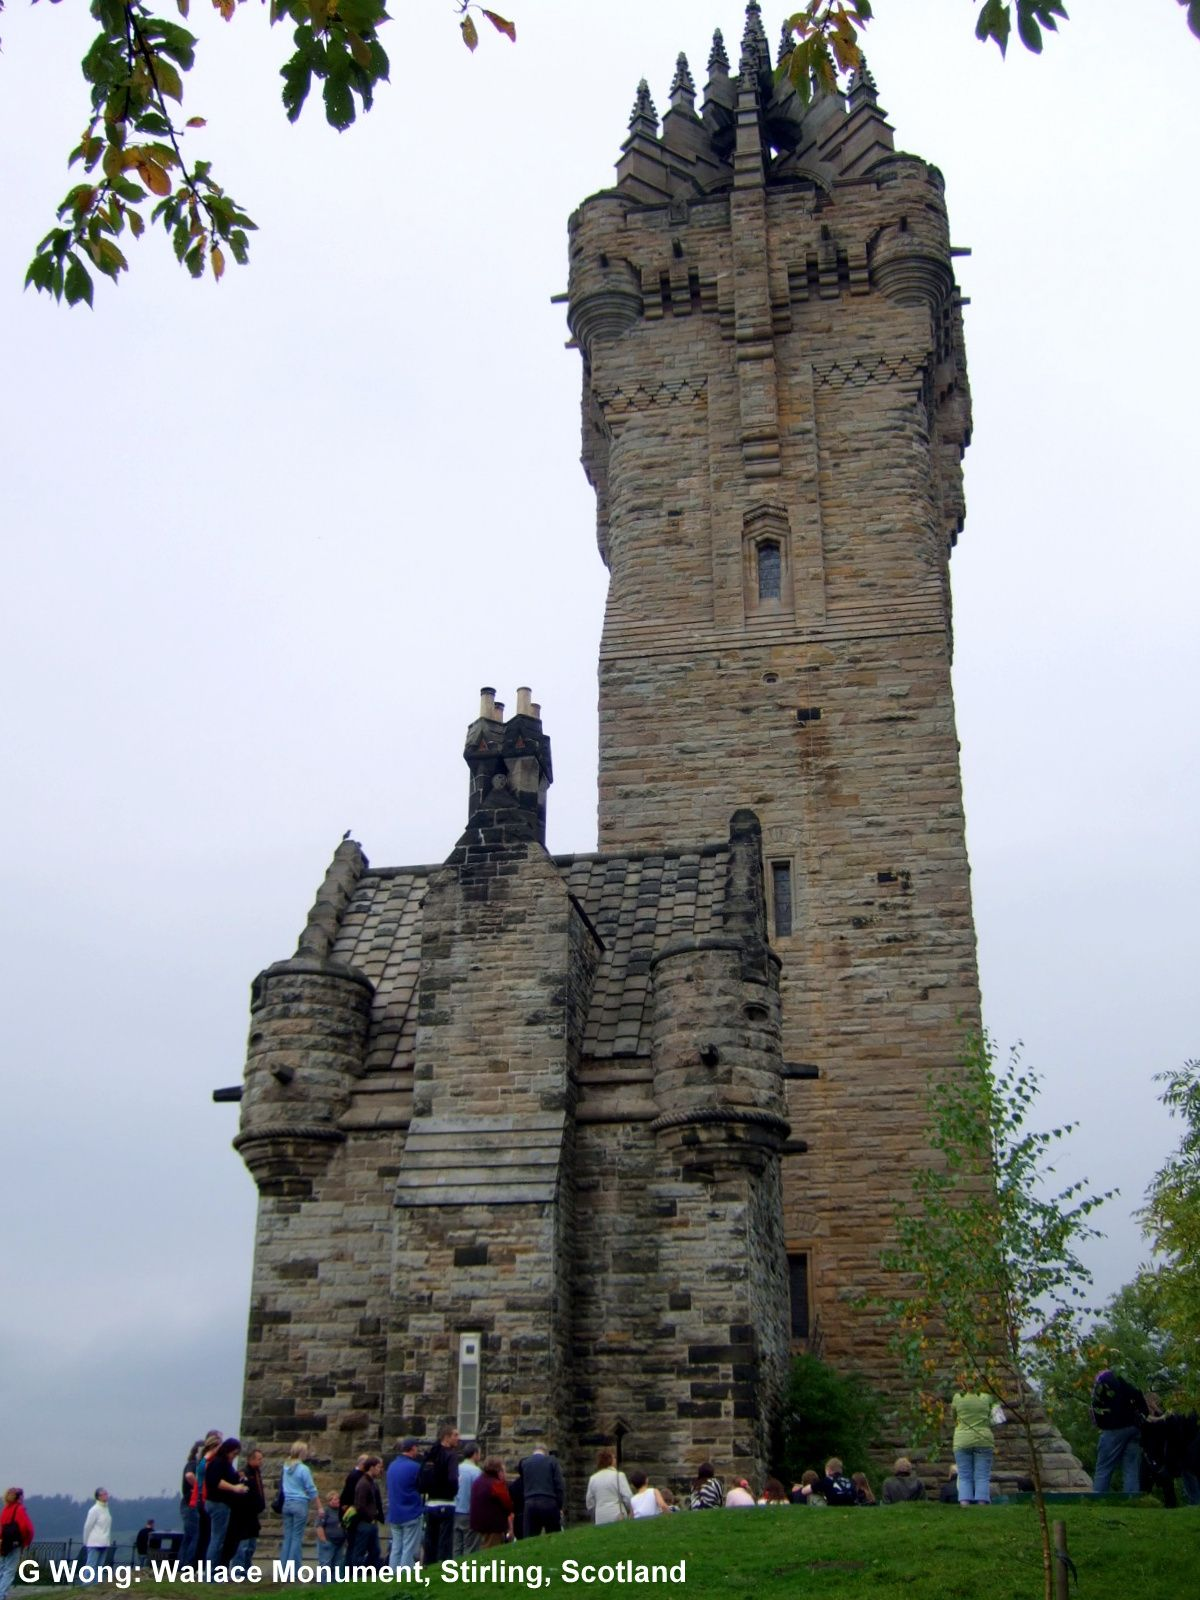 Wallace Monument (victorian gothic) by John Rochead, Stirling Scotland